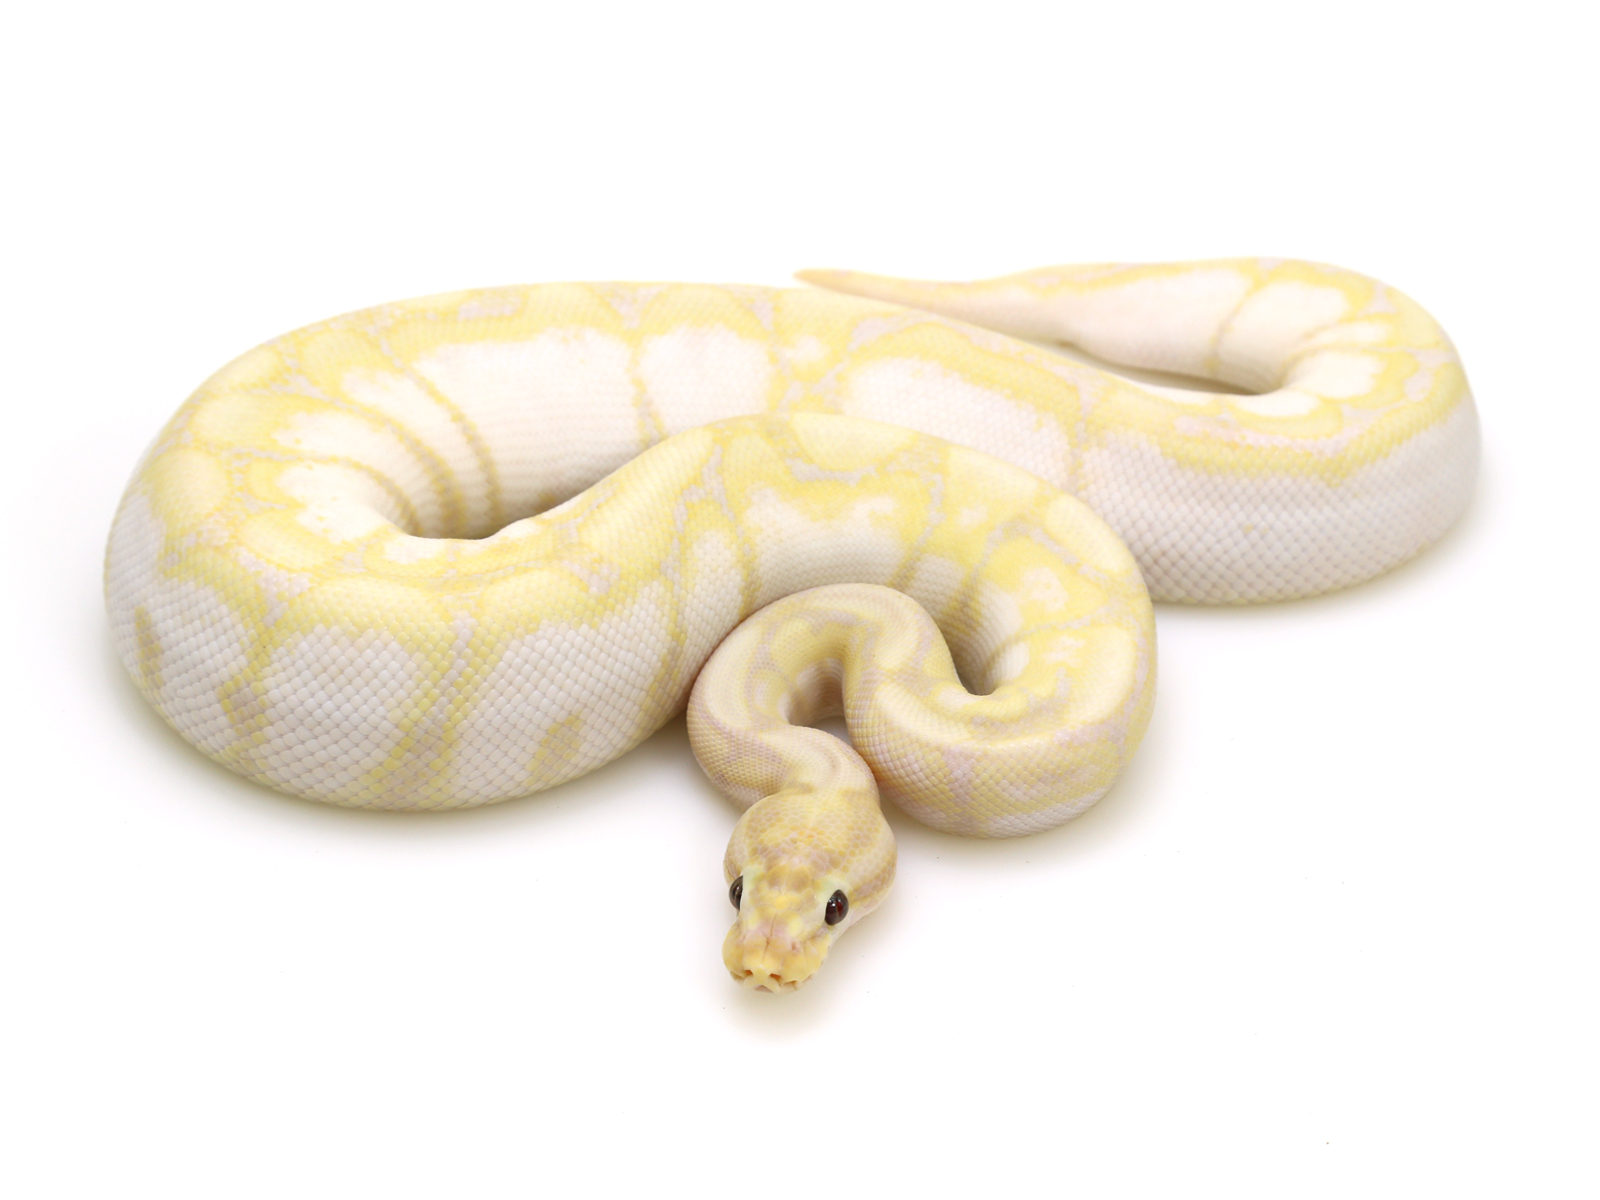 Banana spider ball python - photo#17